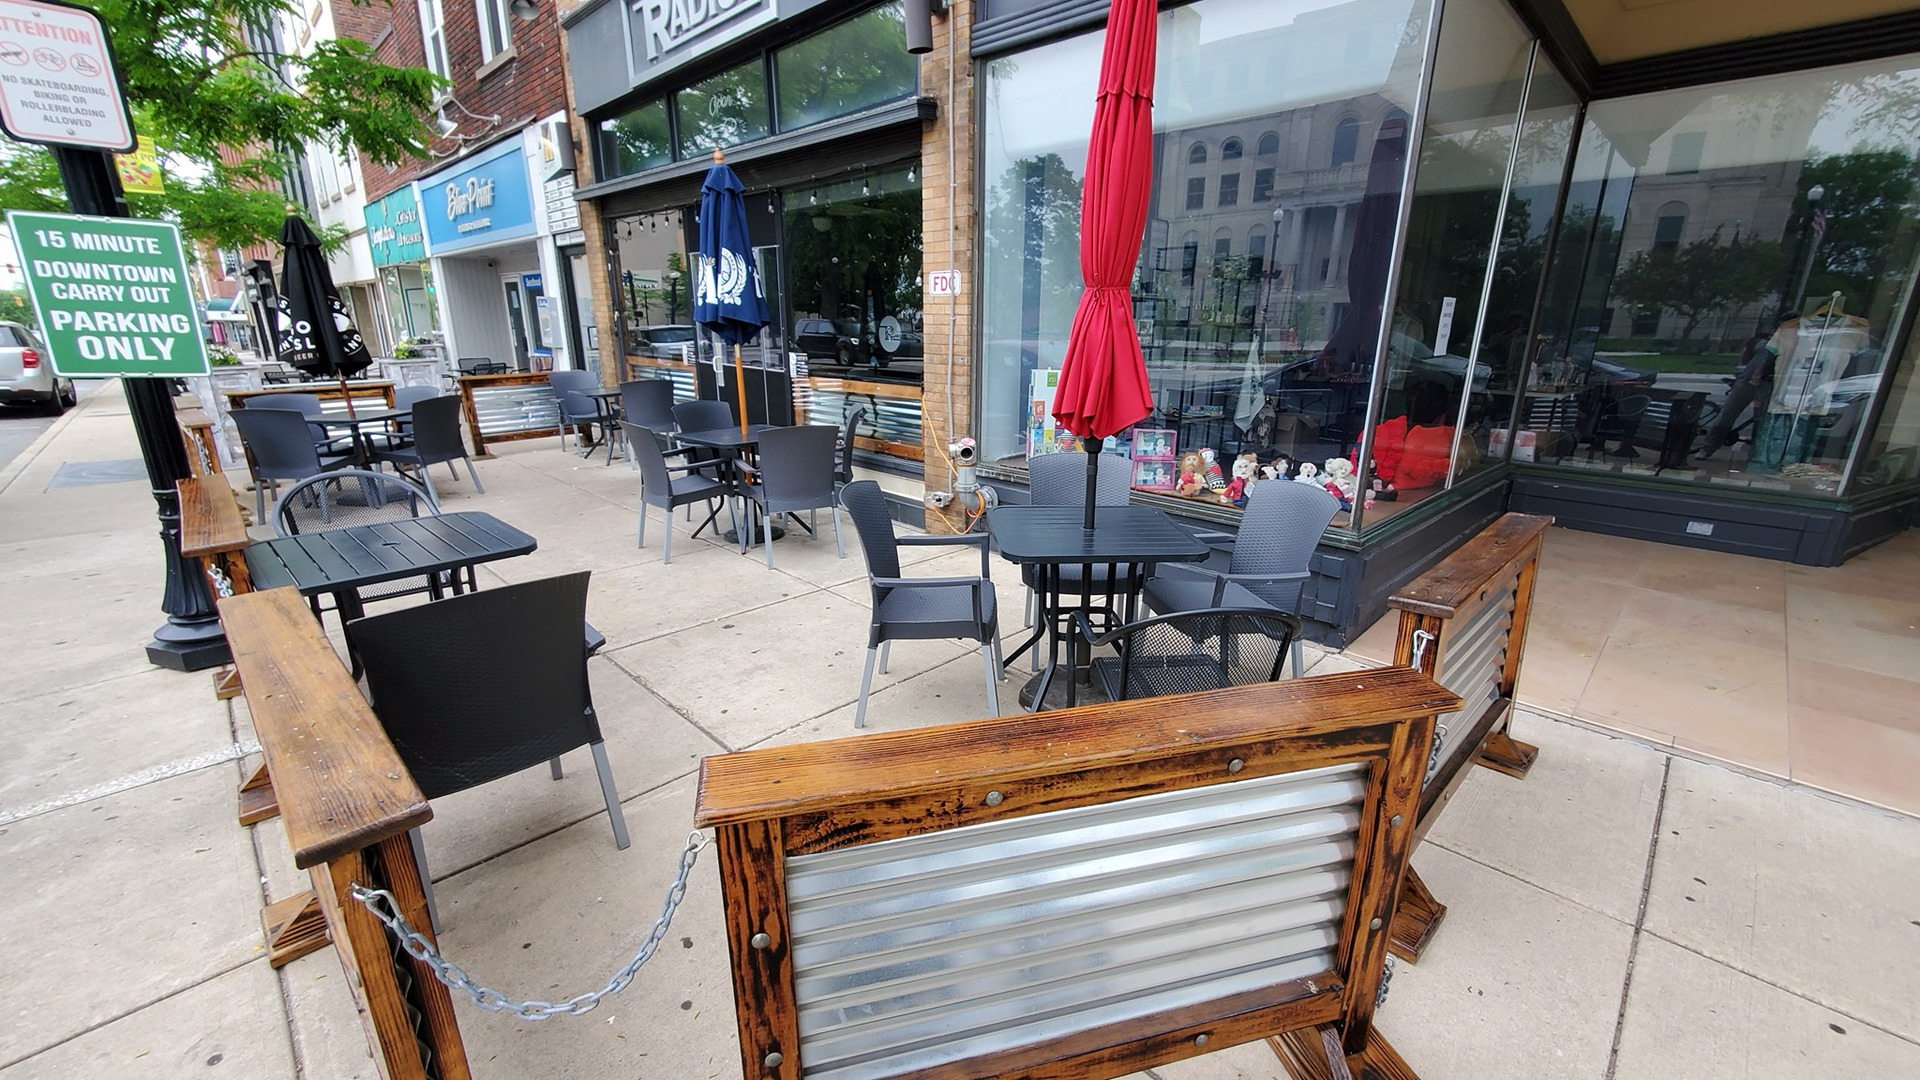 radius expands its outdoor space as one of Valpo's best restaurants